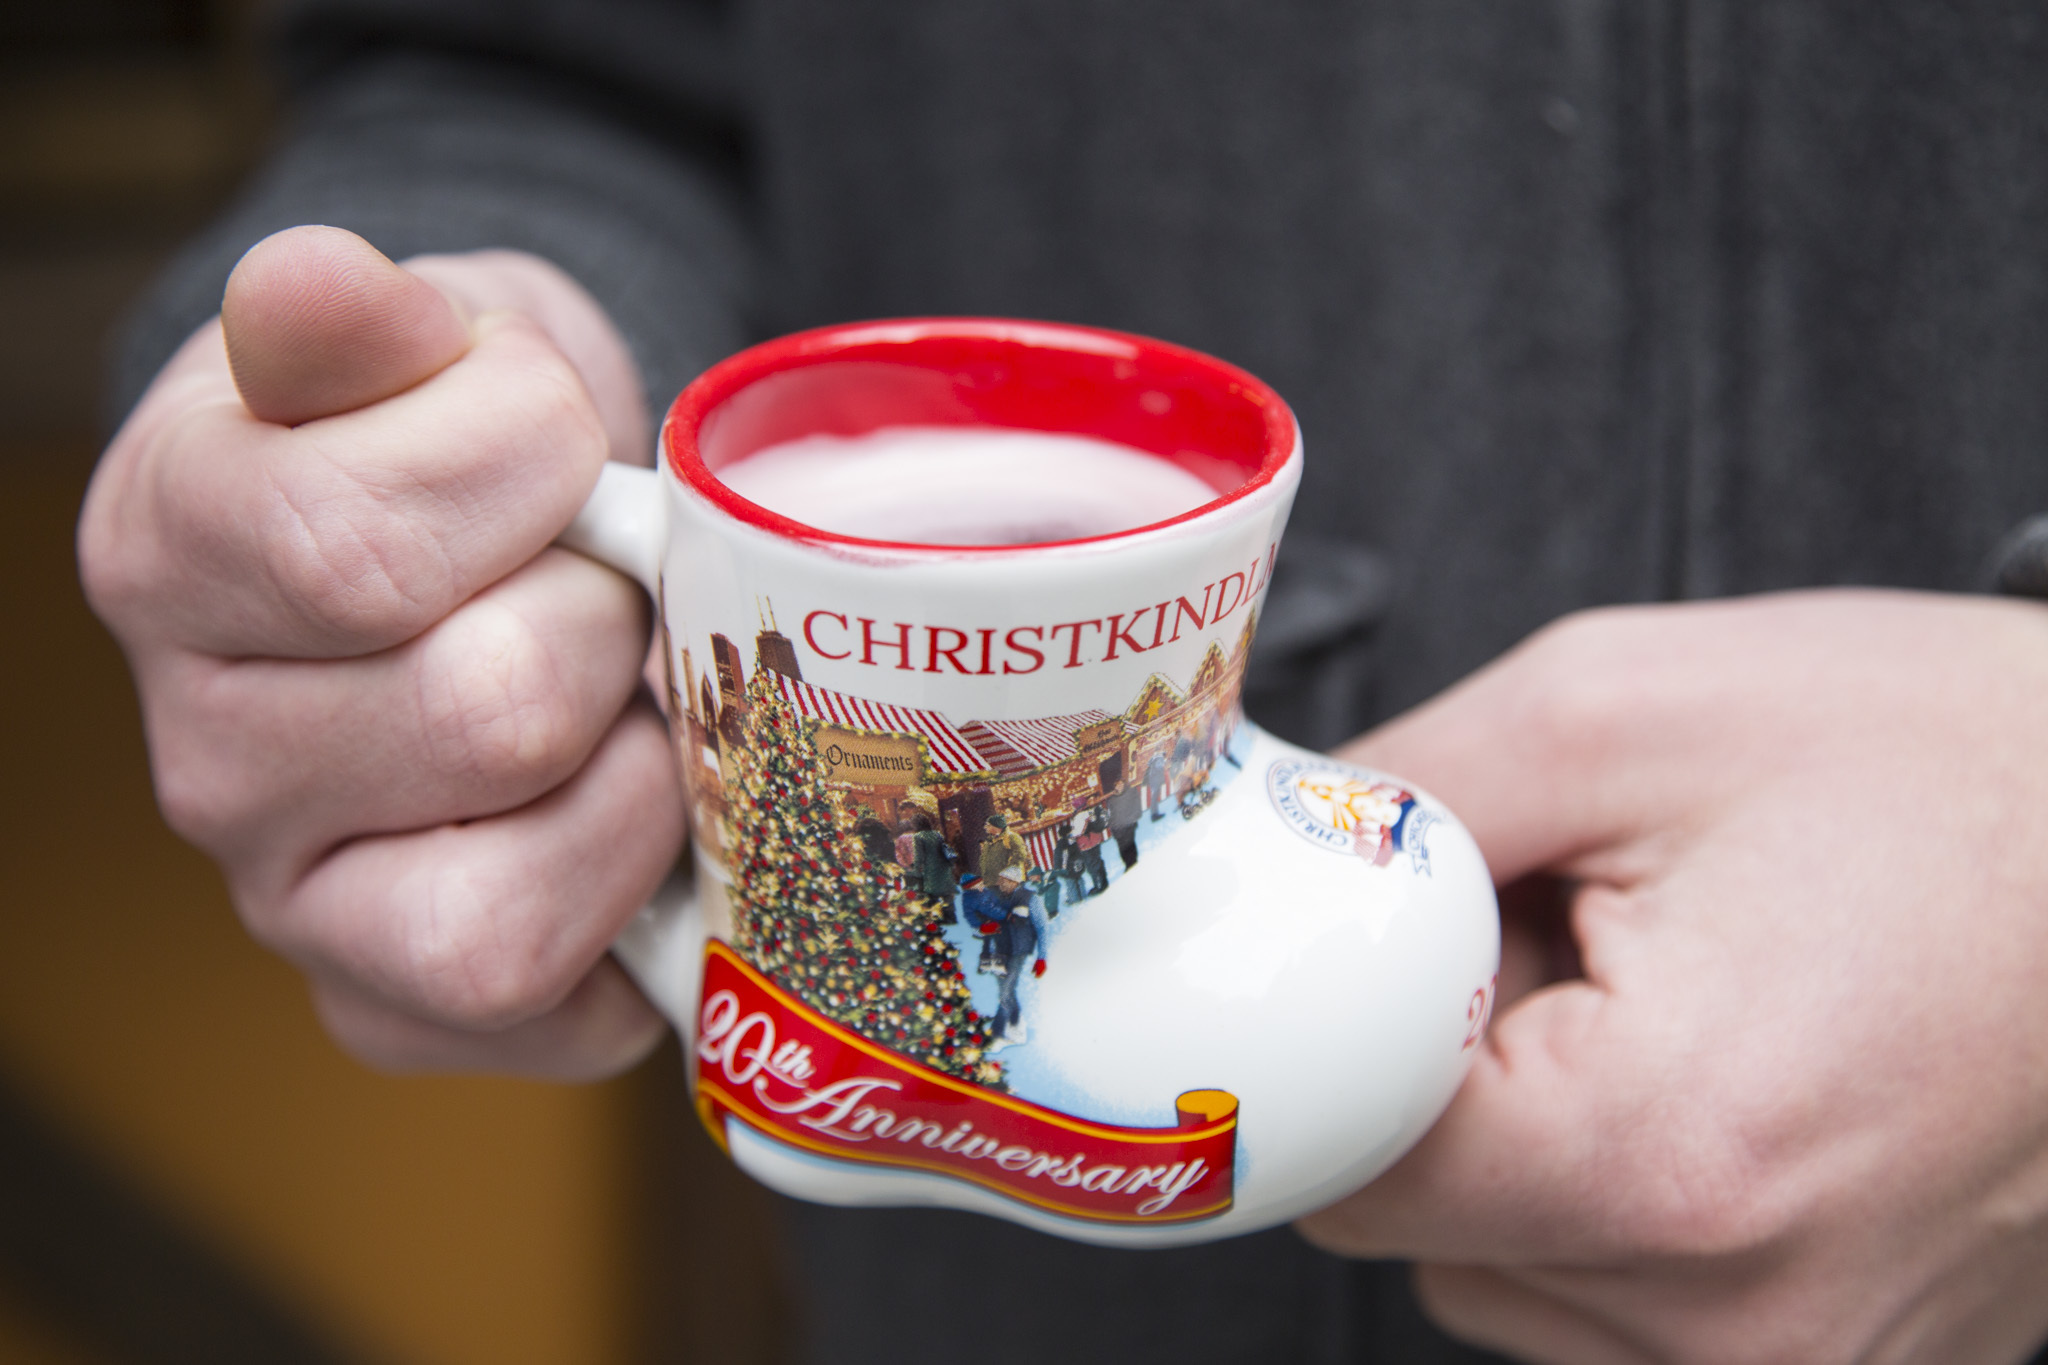 Gluhwein-filled boot at Christkindlmarket